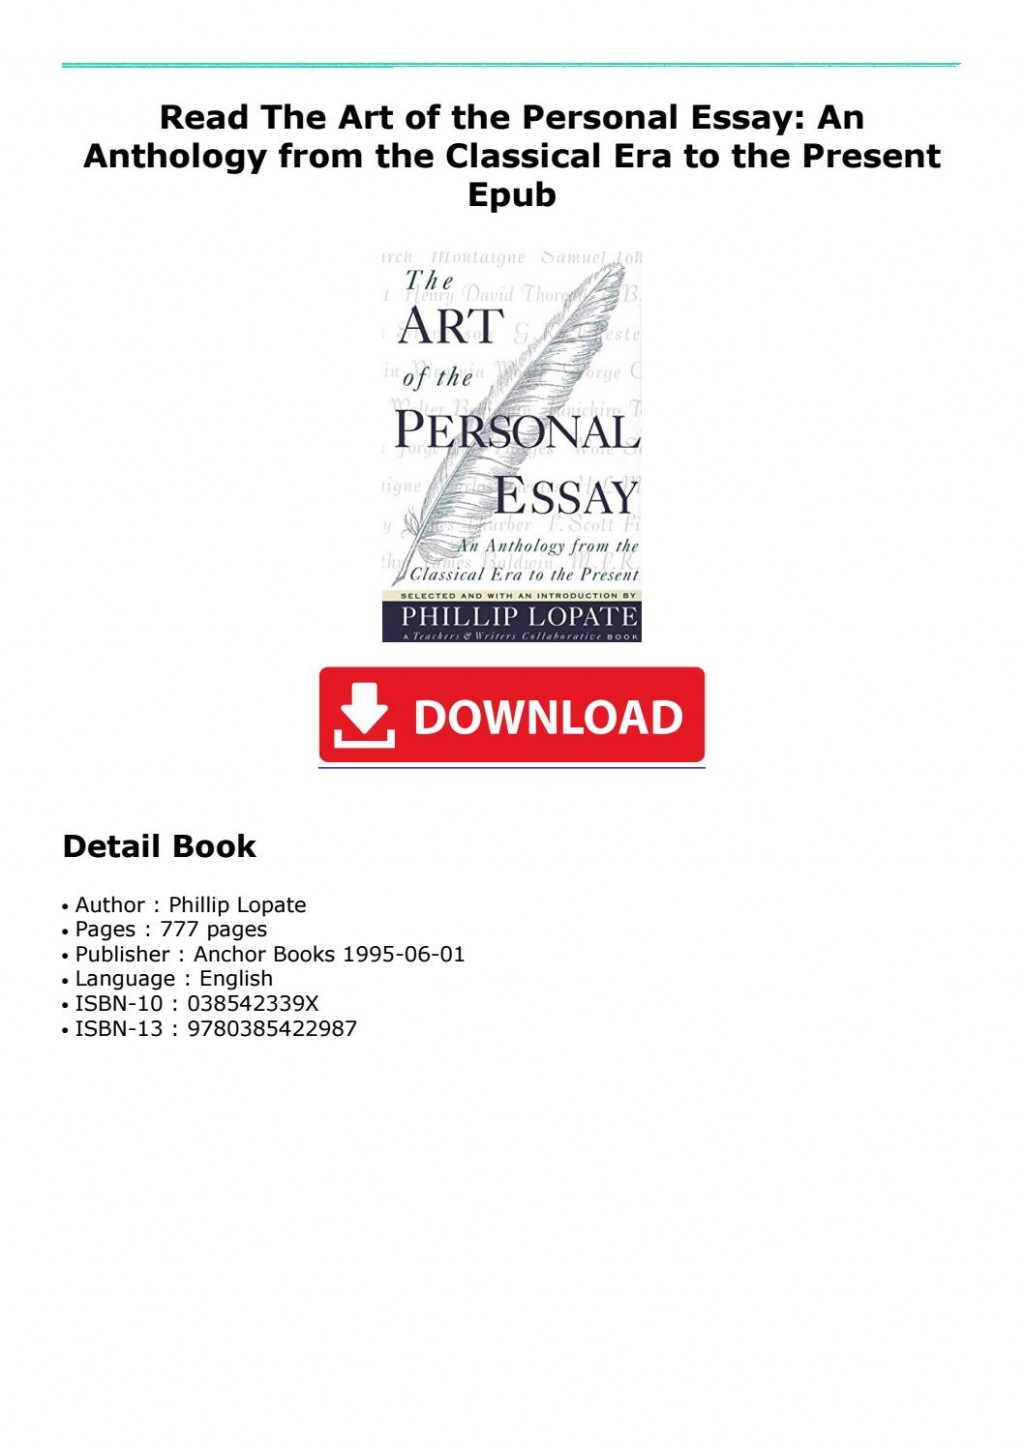 005 Essay Example Page 1 The Art Of Beautiful Personal Phillip Lopate Table Contents Sparknotes Large